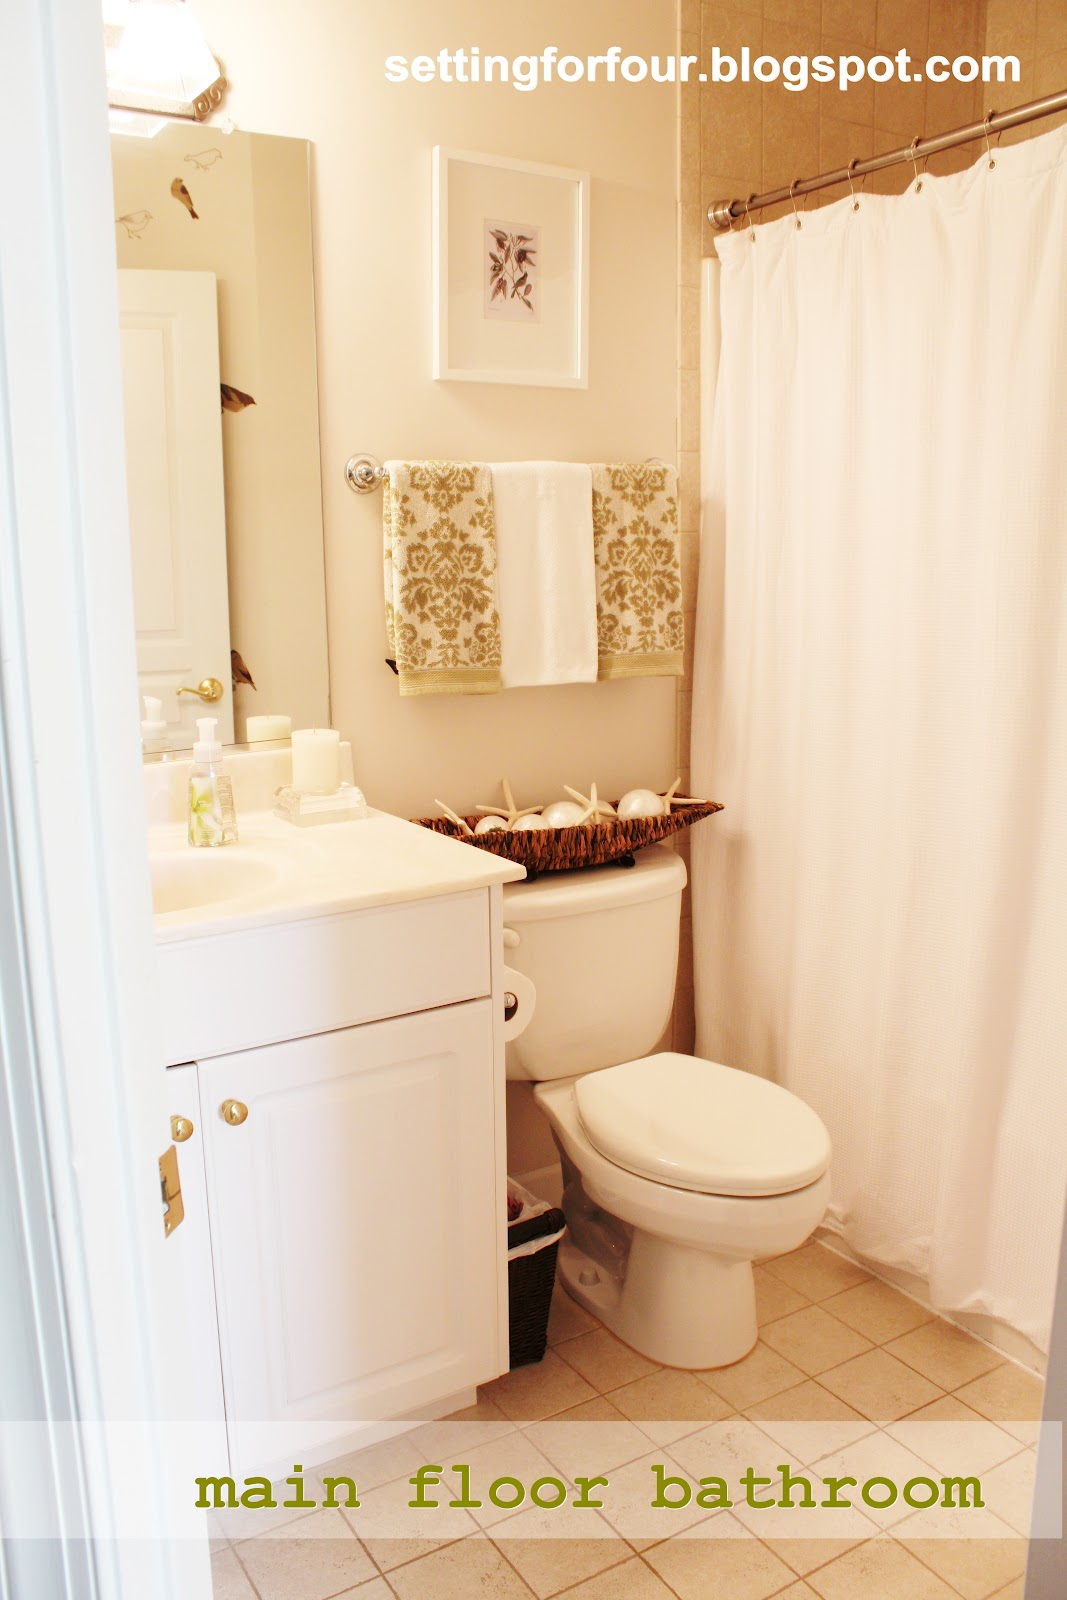 My Space: Main Floor Bathroom - Setting for Four